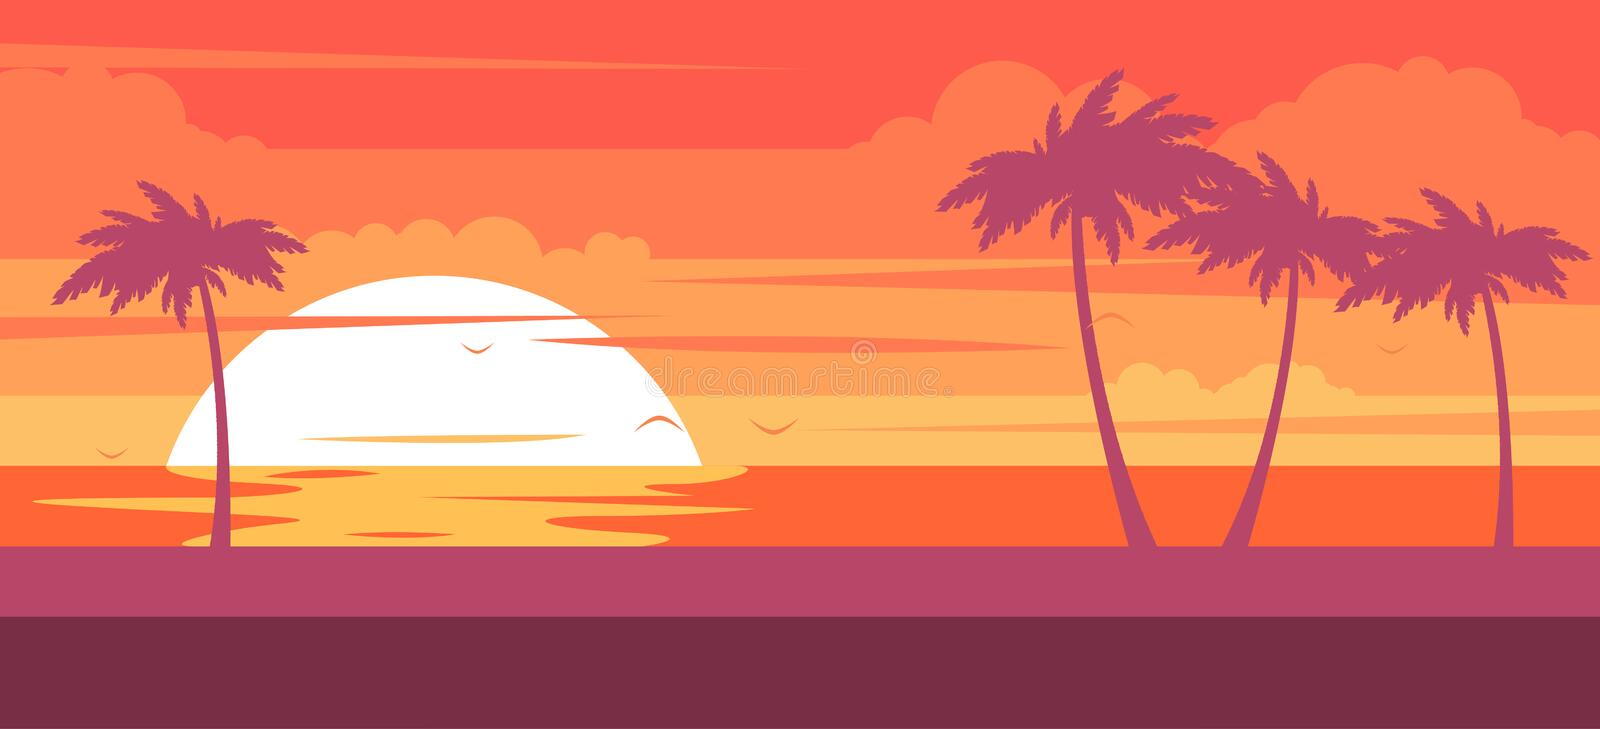 Tropical beach with palm trees and sea - summer resort at sunset vector illustration